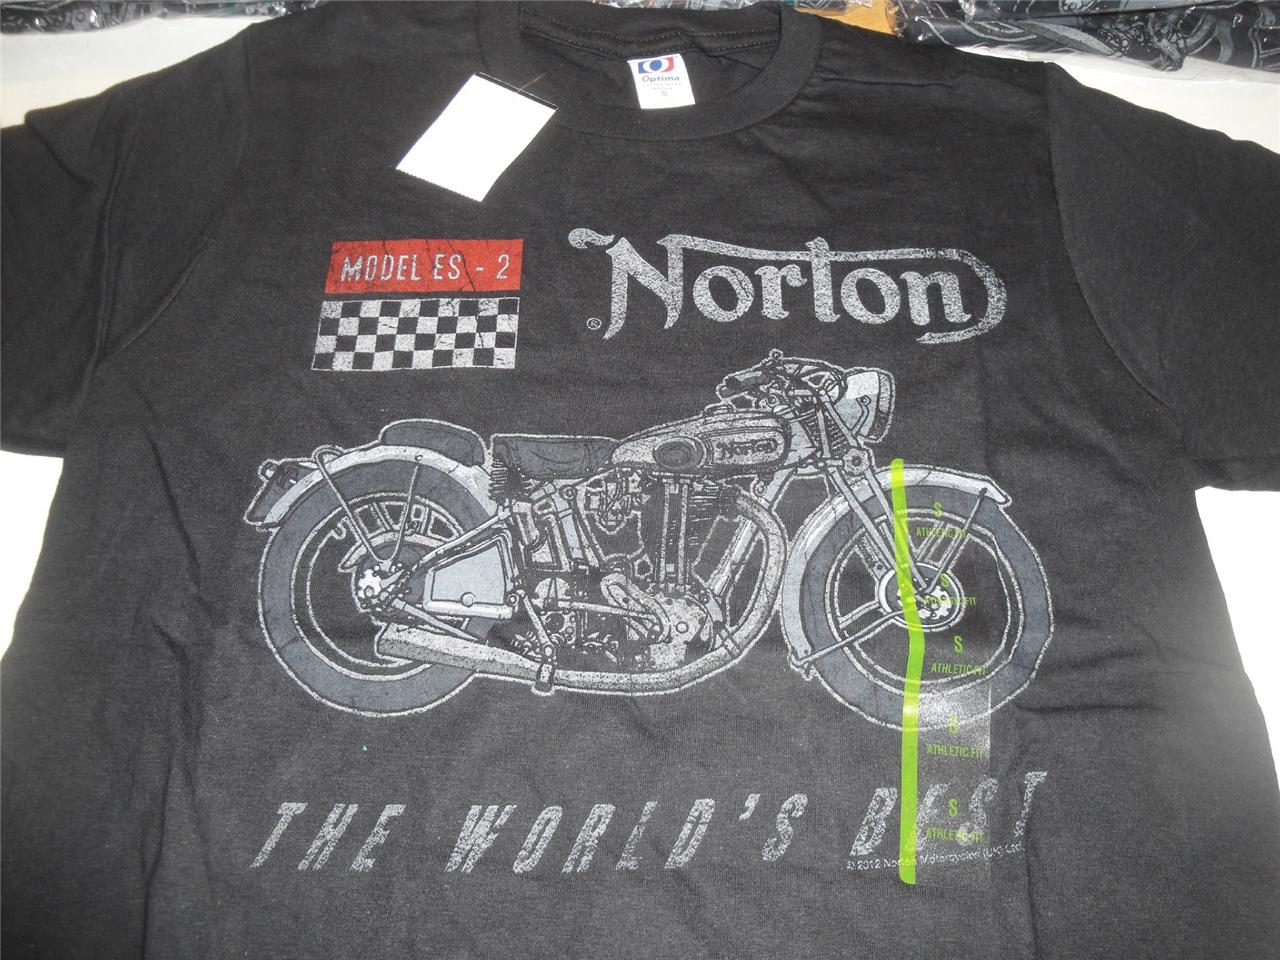 Norton t. photo - 8